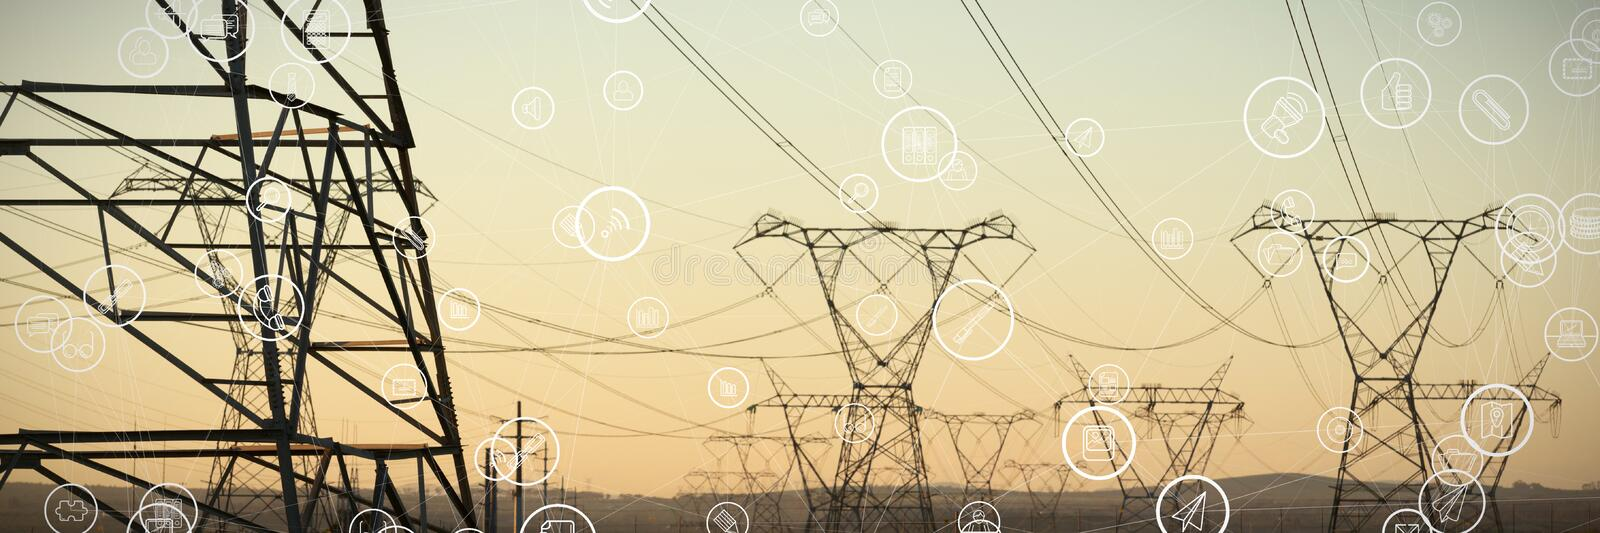 Composite image of technology icons. Technology icons against the evening electricity pylon silhouette royalty free stock photography